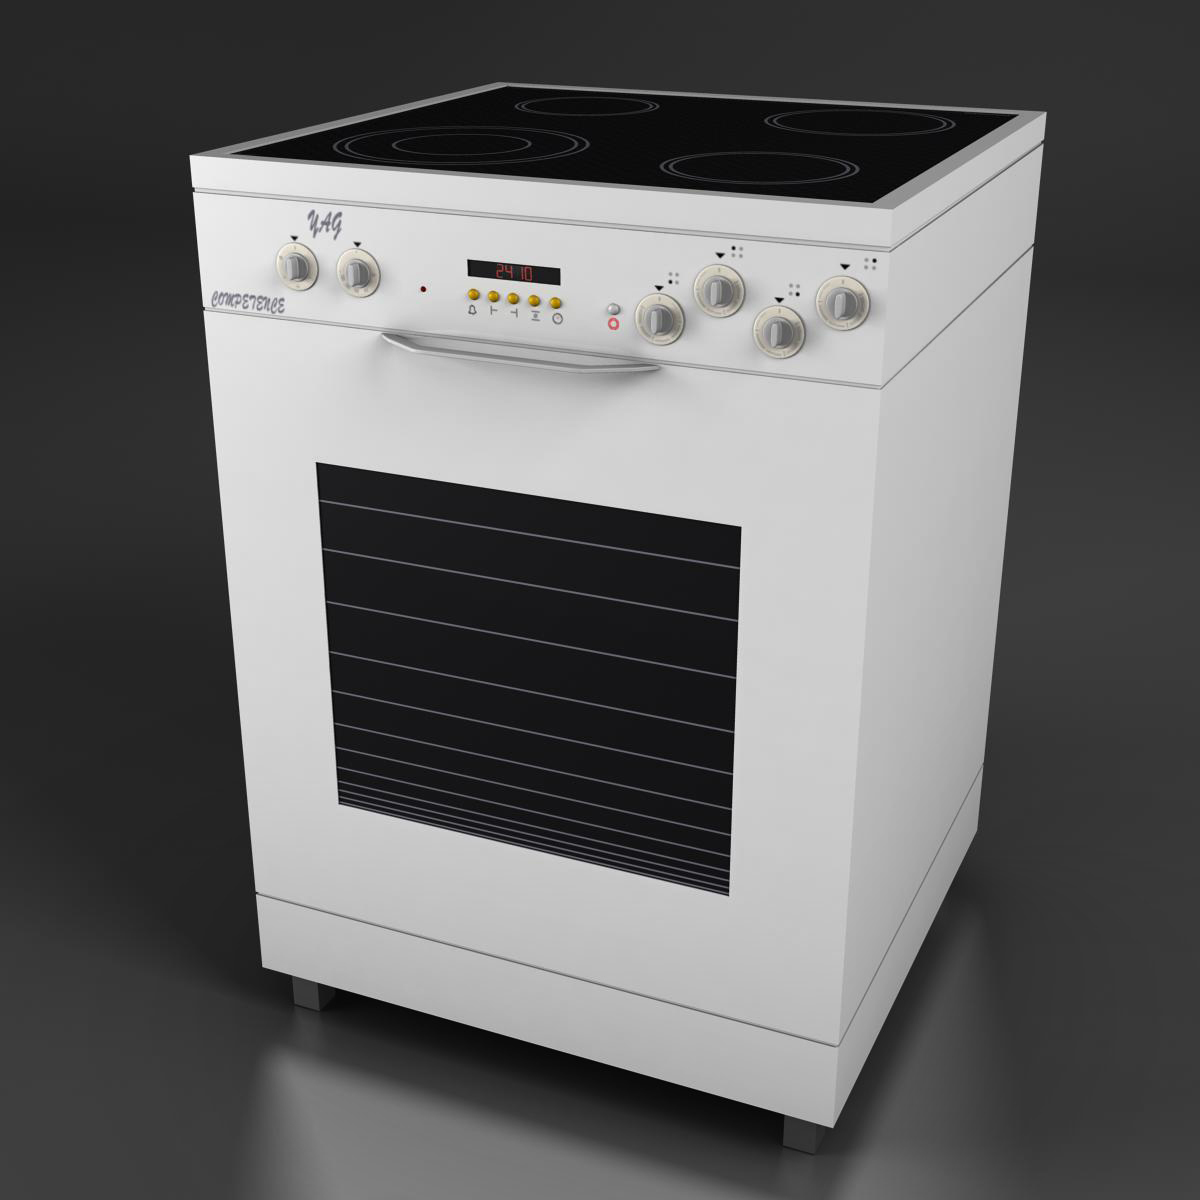 oven 3d model 3ds max fbx ma mb obj 158545